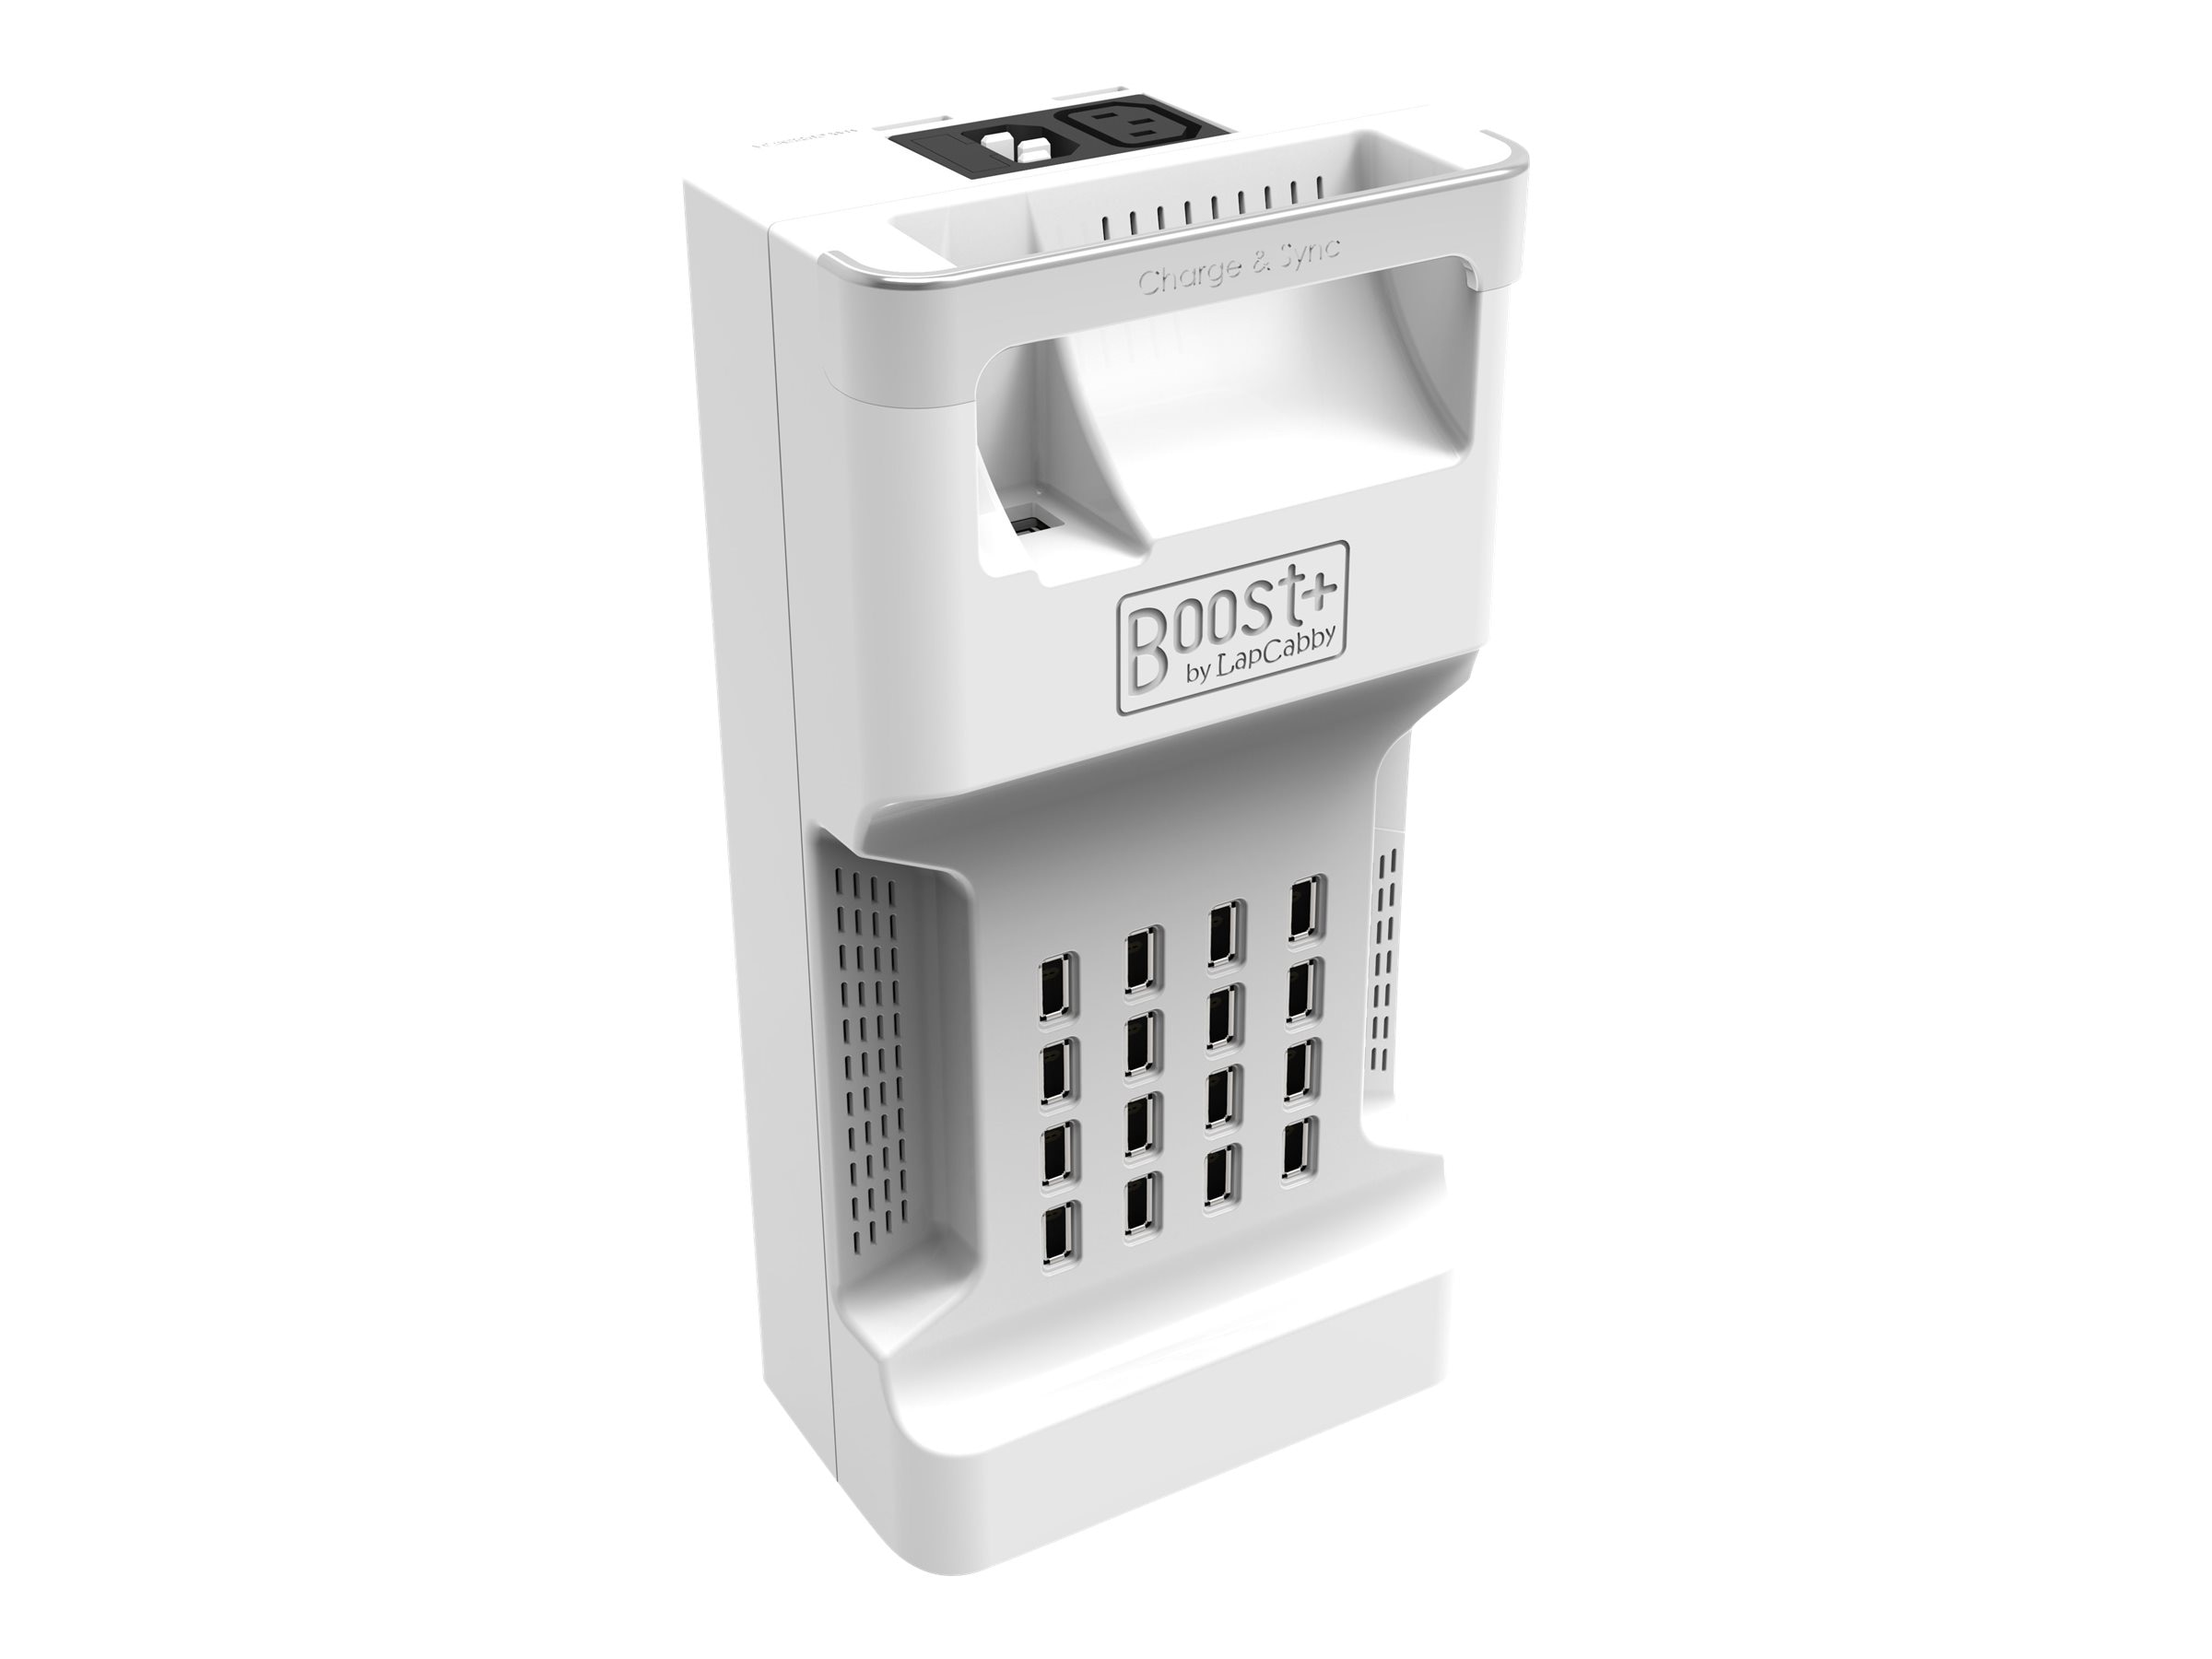 LapCabby Boost 16 Charge and Sync Station, White, BOO16CHSYNC/USA